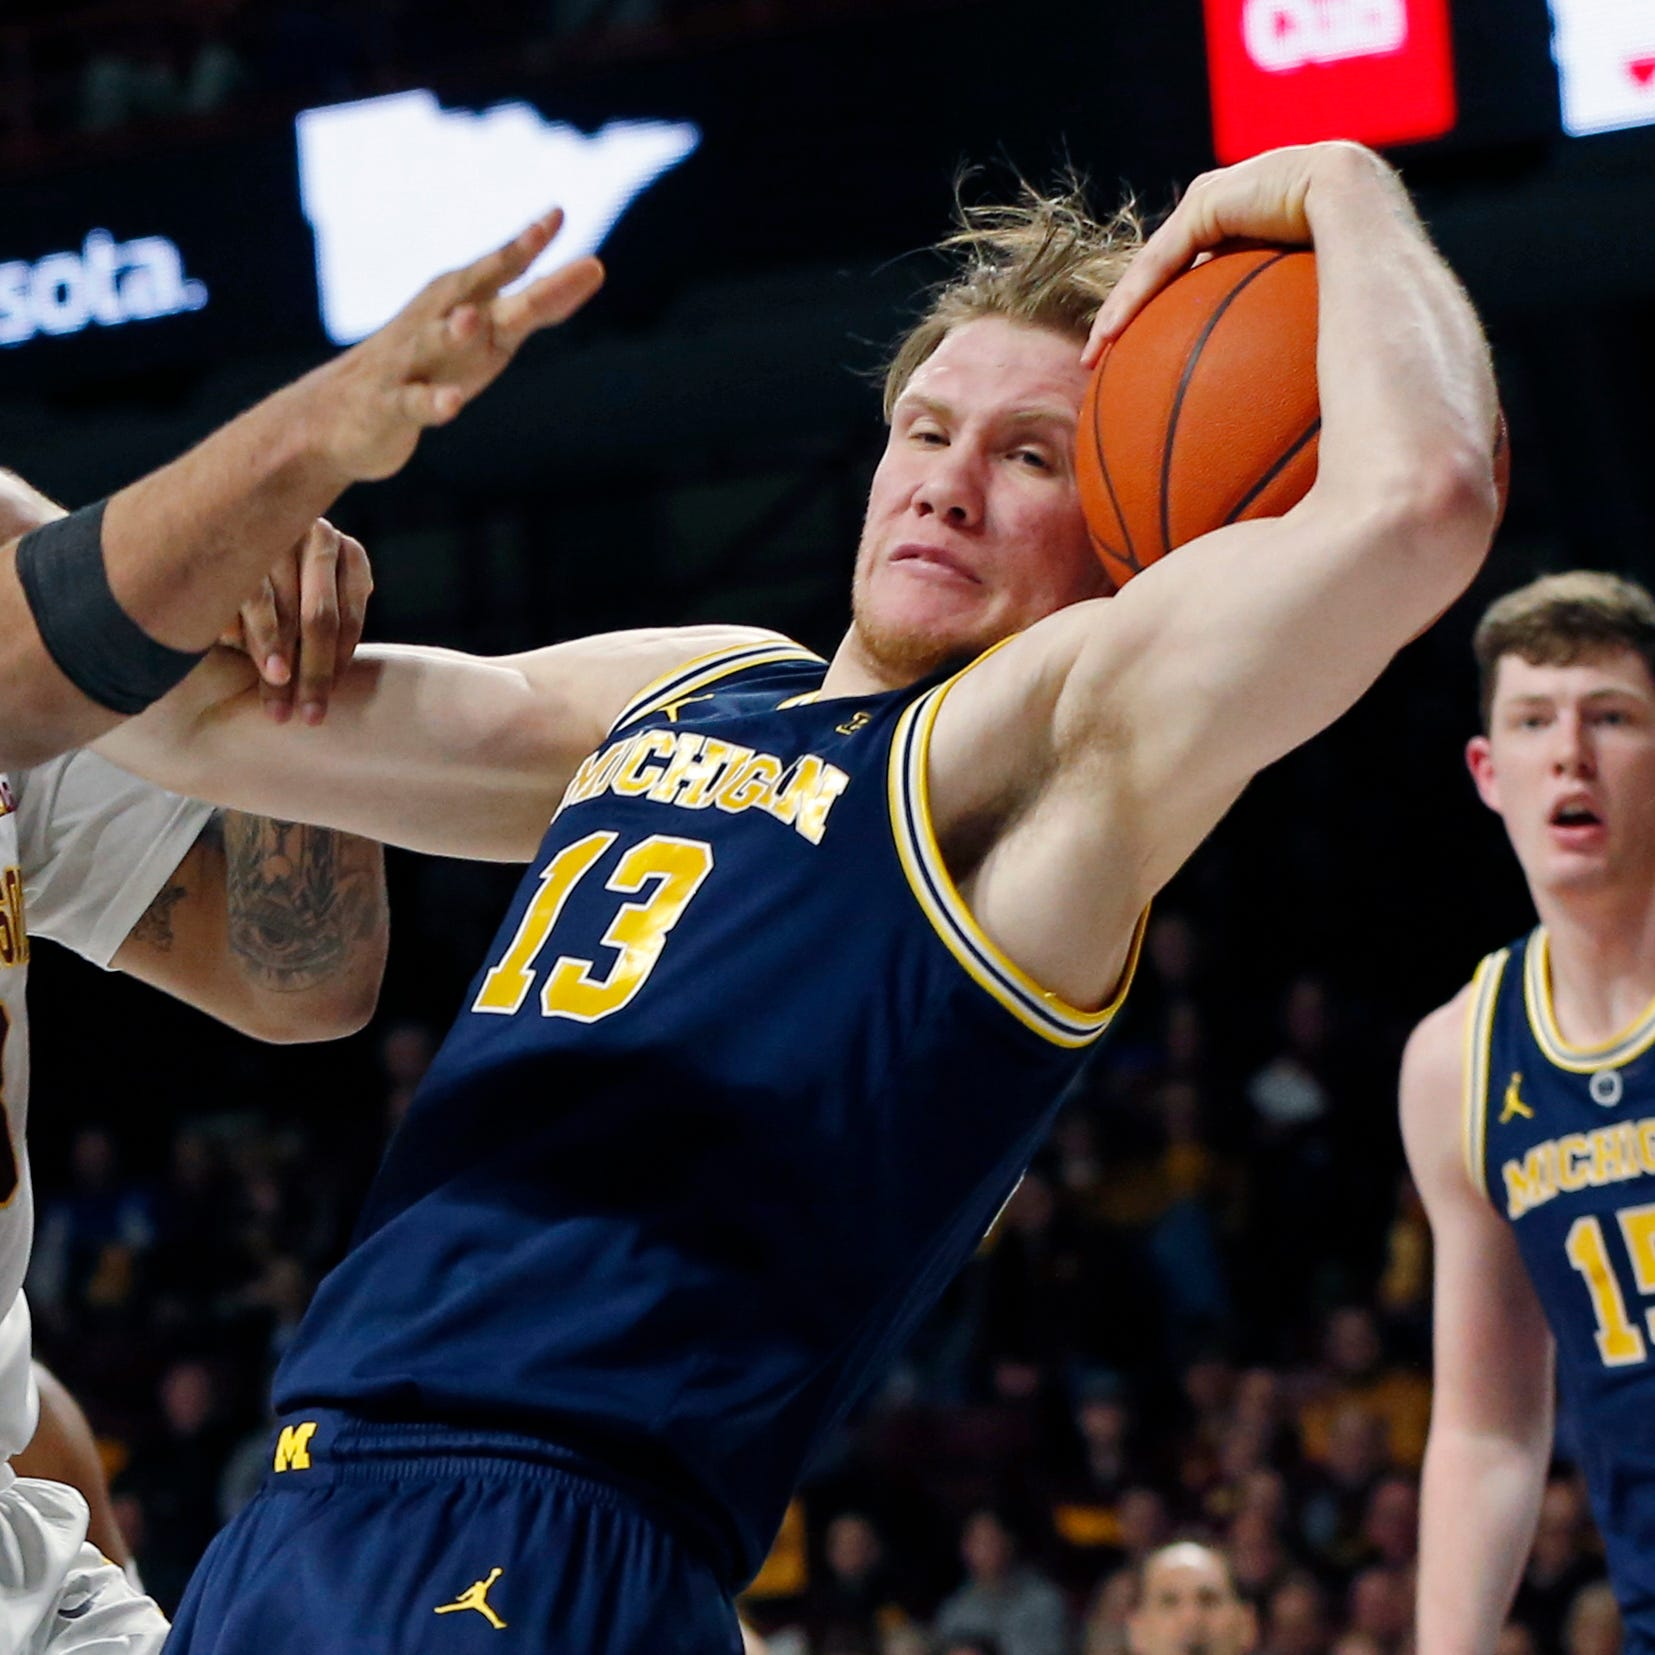 Poole keeps Michigan afloat in win over Minnesota